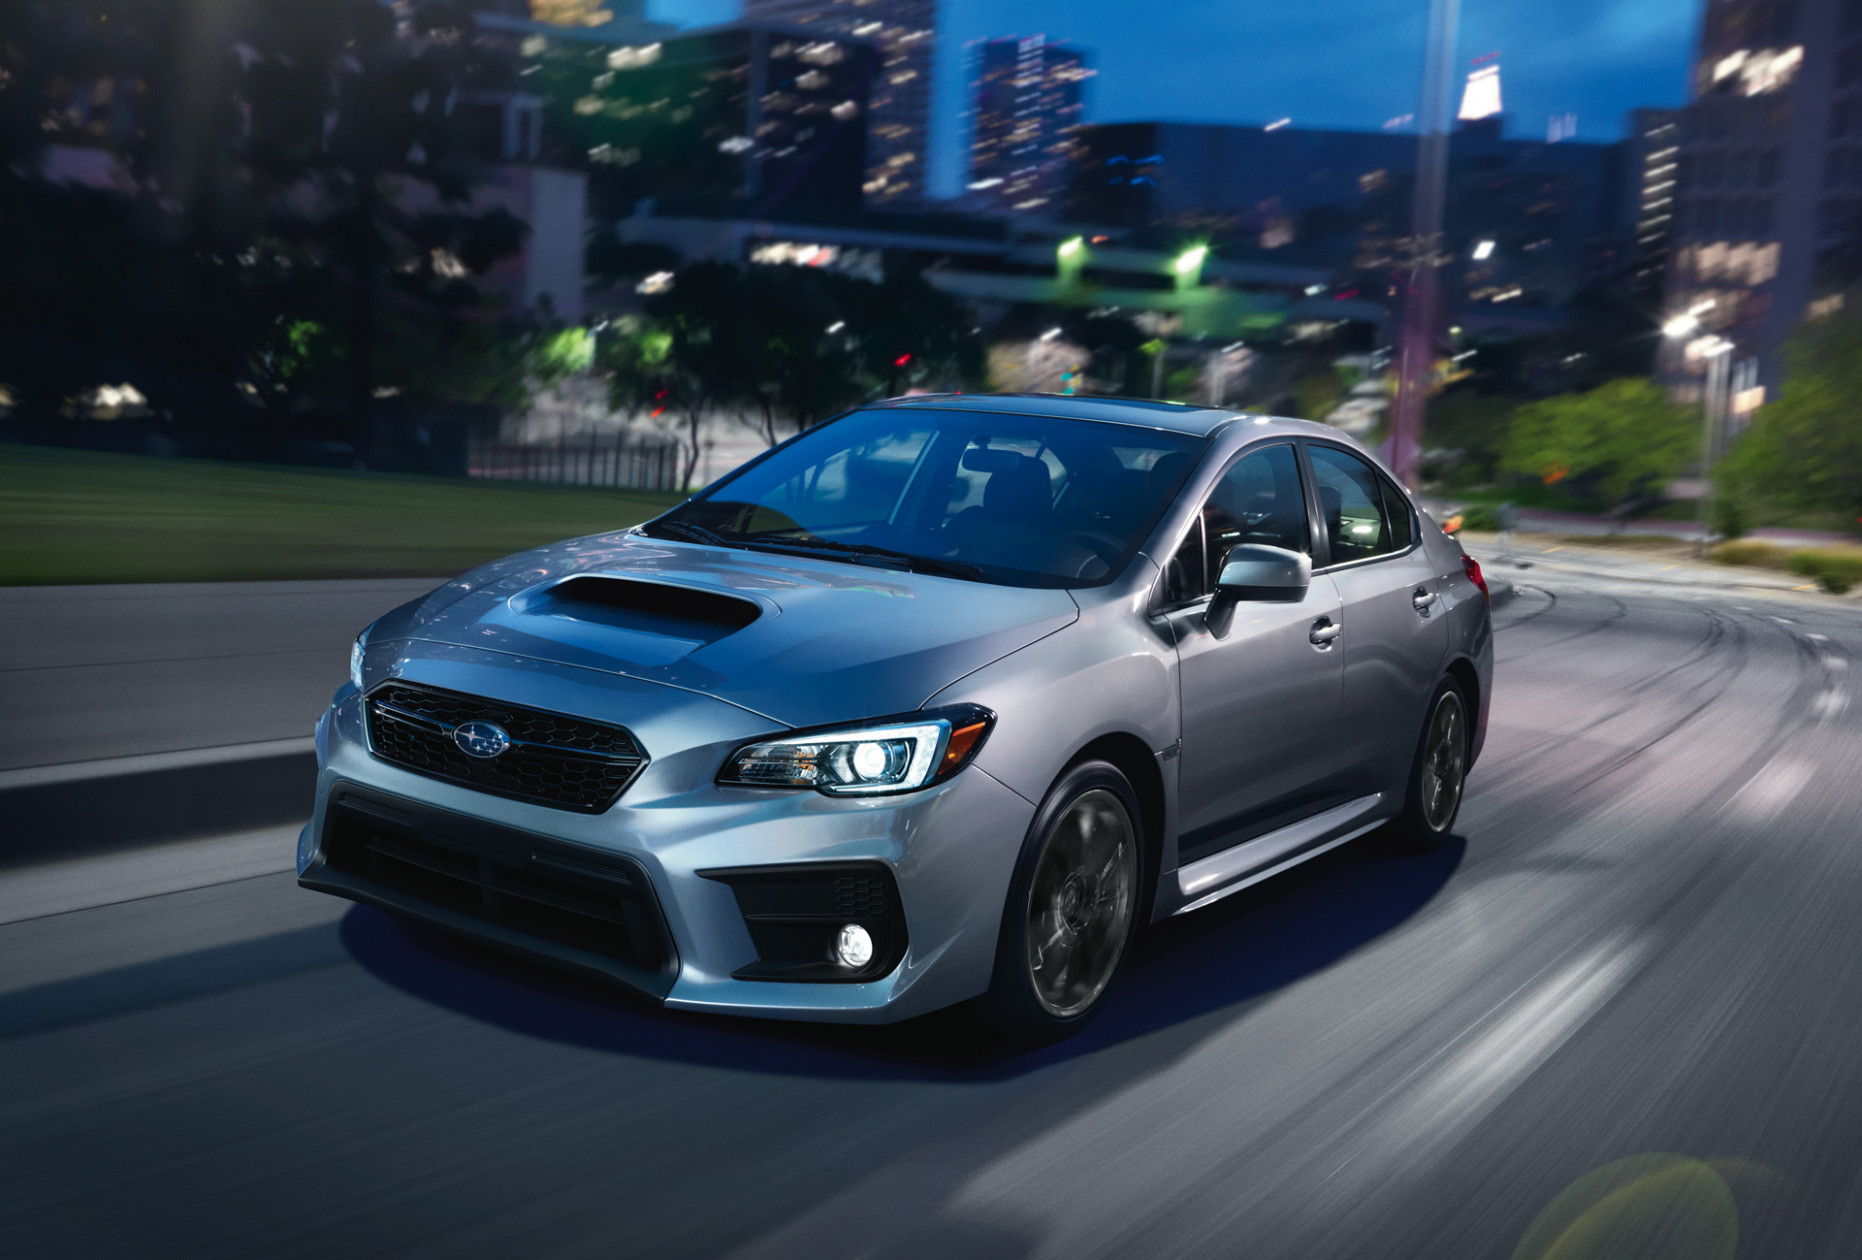 6 Subaru WRX and WRX STI preview - subaru usa 2020